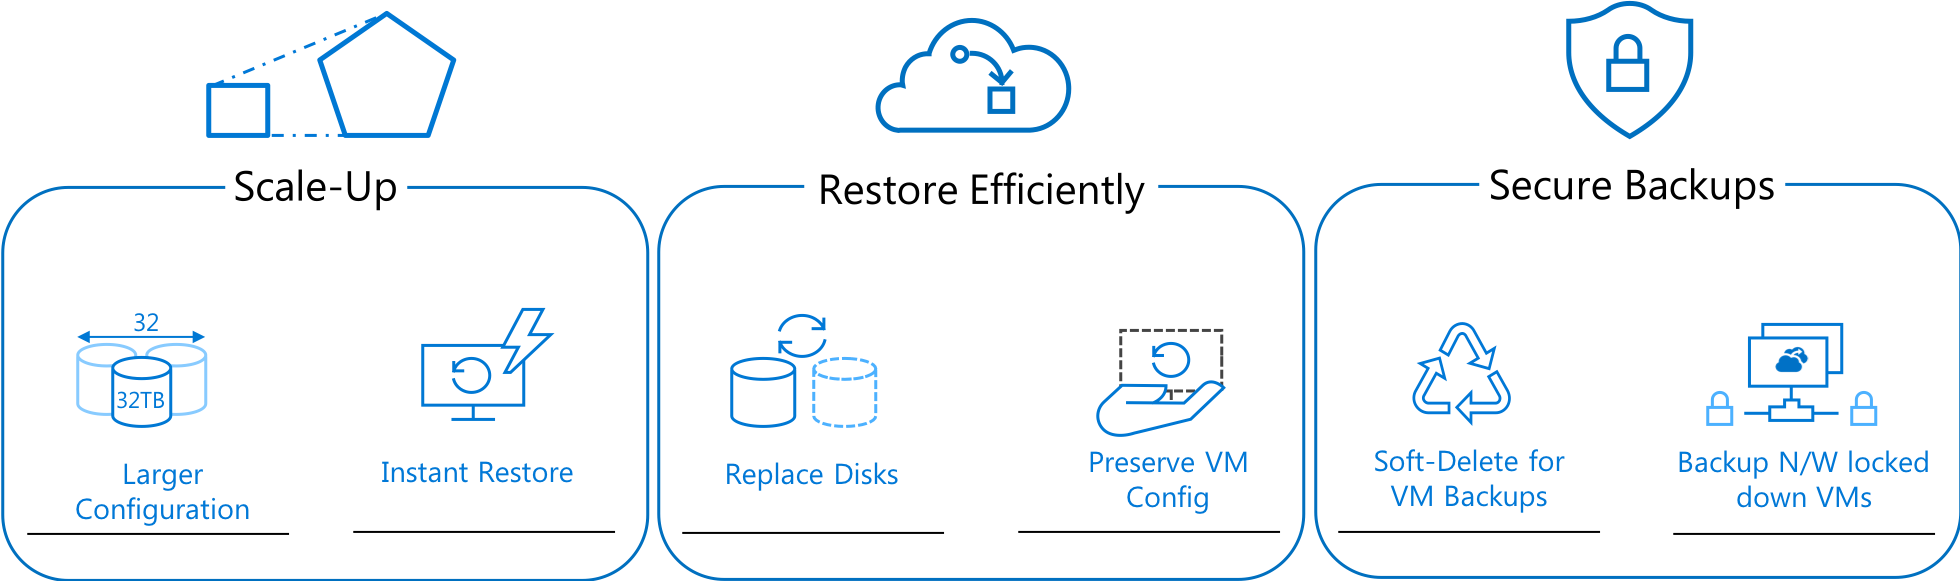 CMMC Azure Backup Benefits